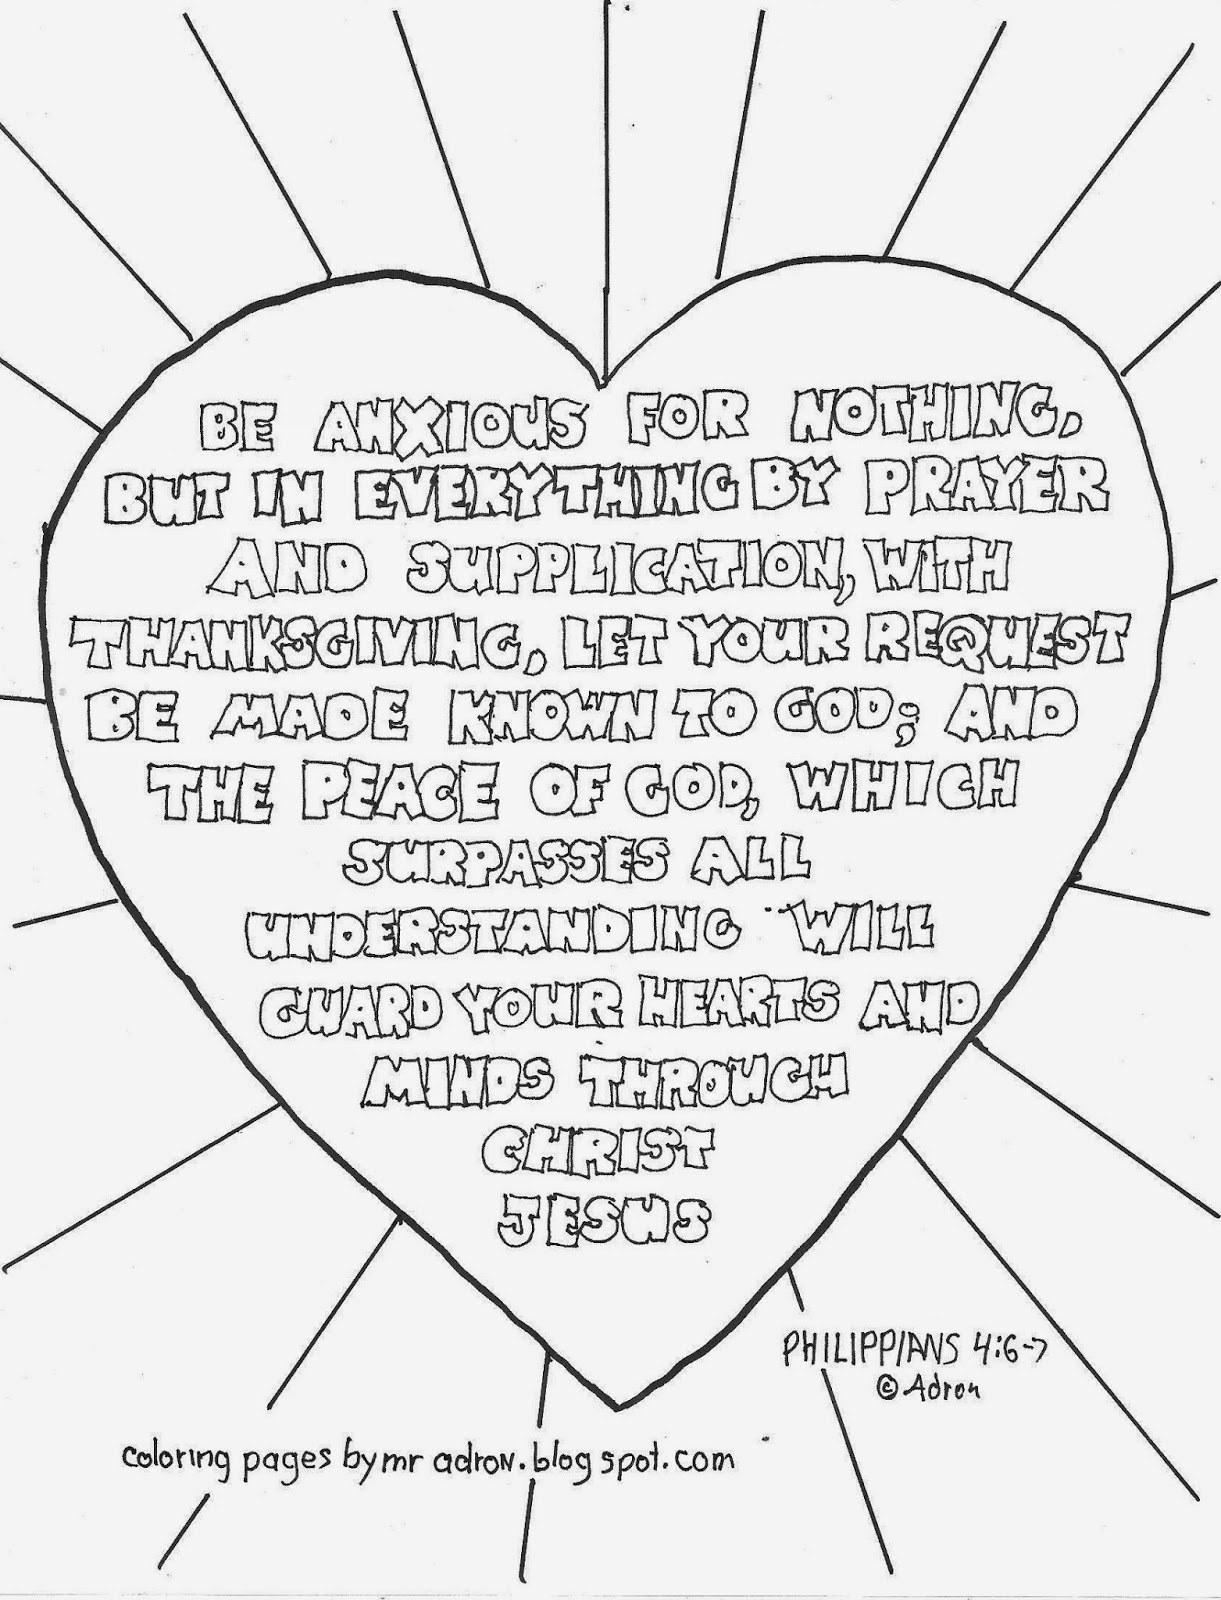 philippians 1 6 coloring sheet philippians kids coloring pages by kristen he with bible 6 coloring philippians 1 sheet